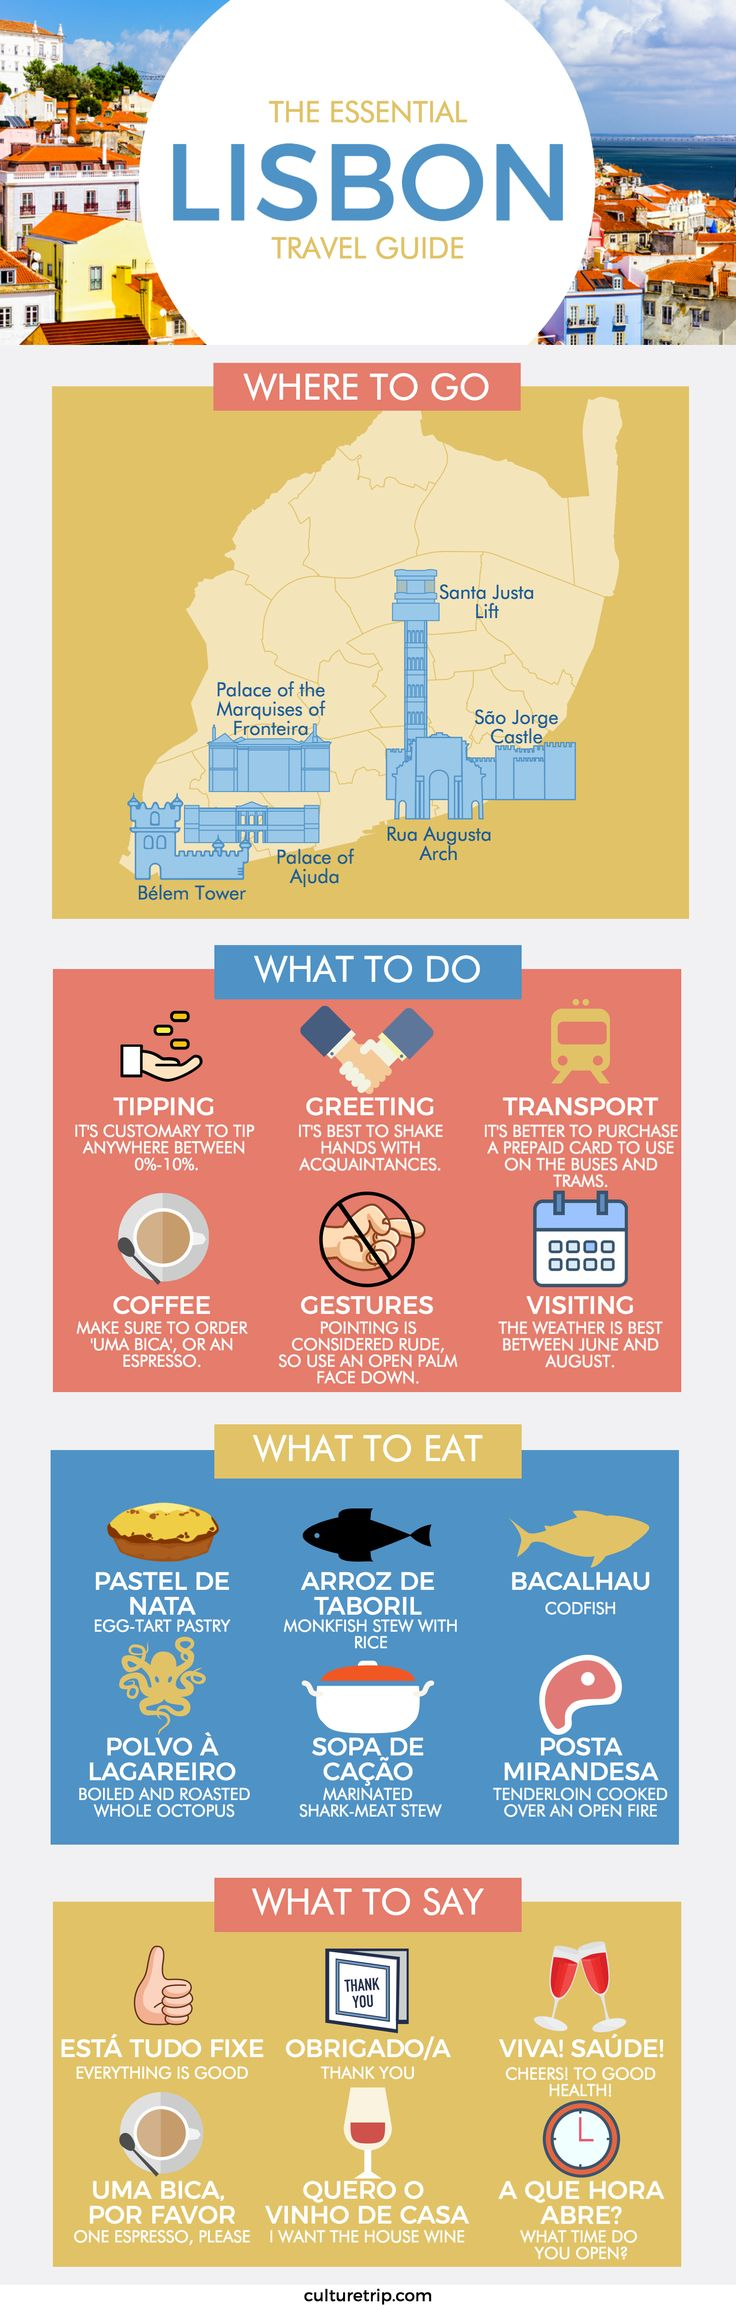 The Ultimate Travel Guide to Lisbon (Infographic) ✈✈✈ Don't miss your chance to win a Free Roundtrip Ticket to anywhere in the world **GIVEAWAY** ✈✈✈ https://thedecisionmoment.com/free-roundtrip-tickets-giveaway/